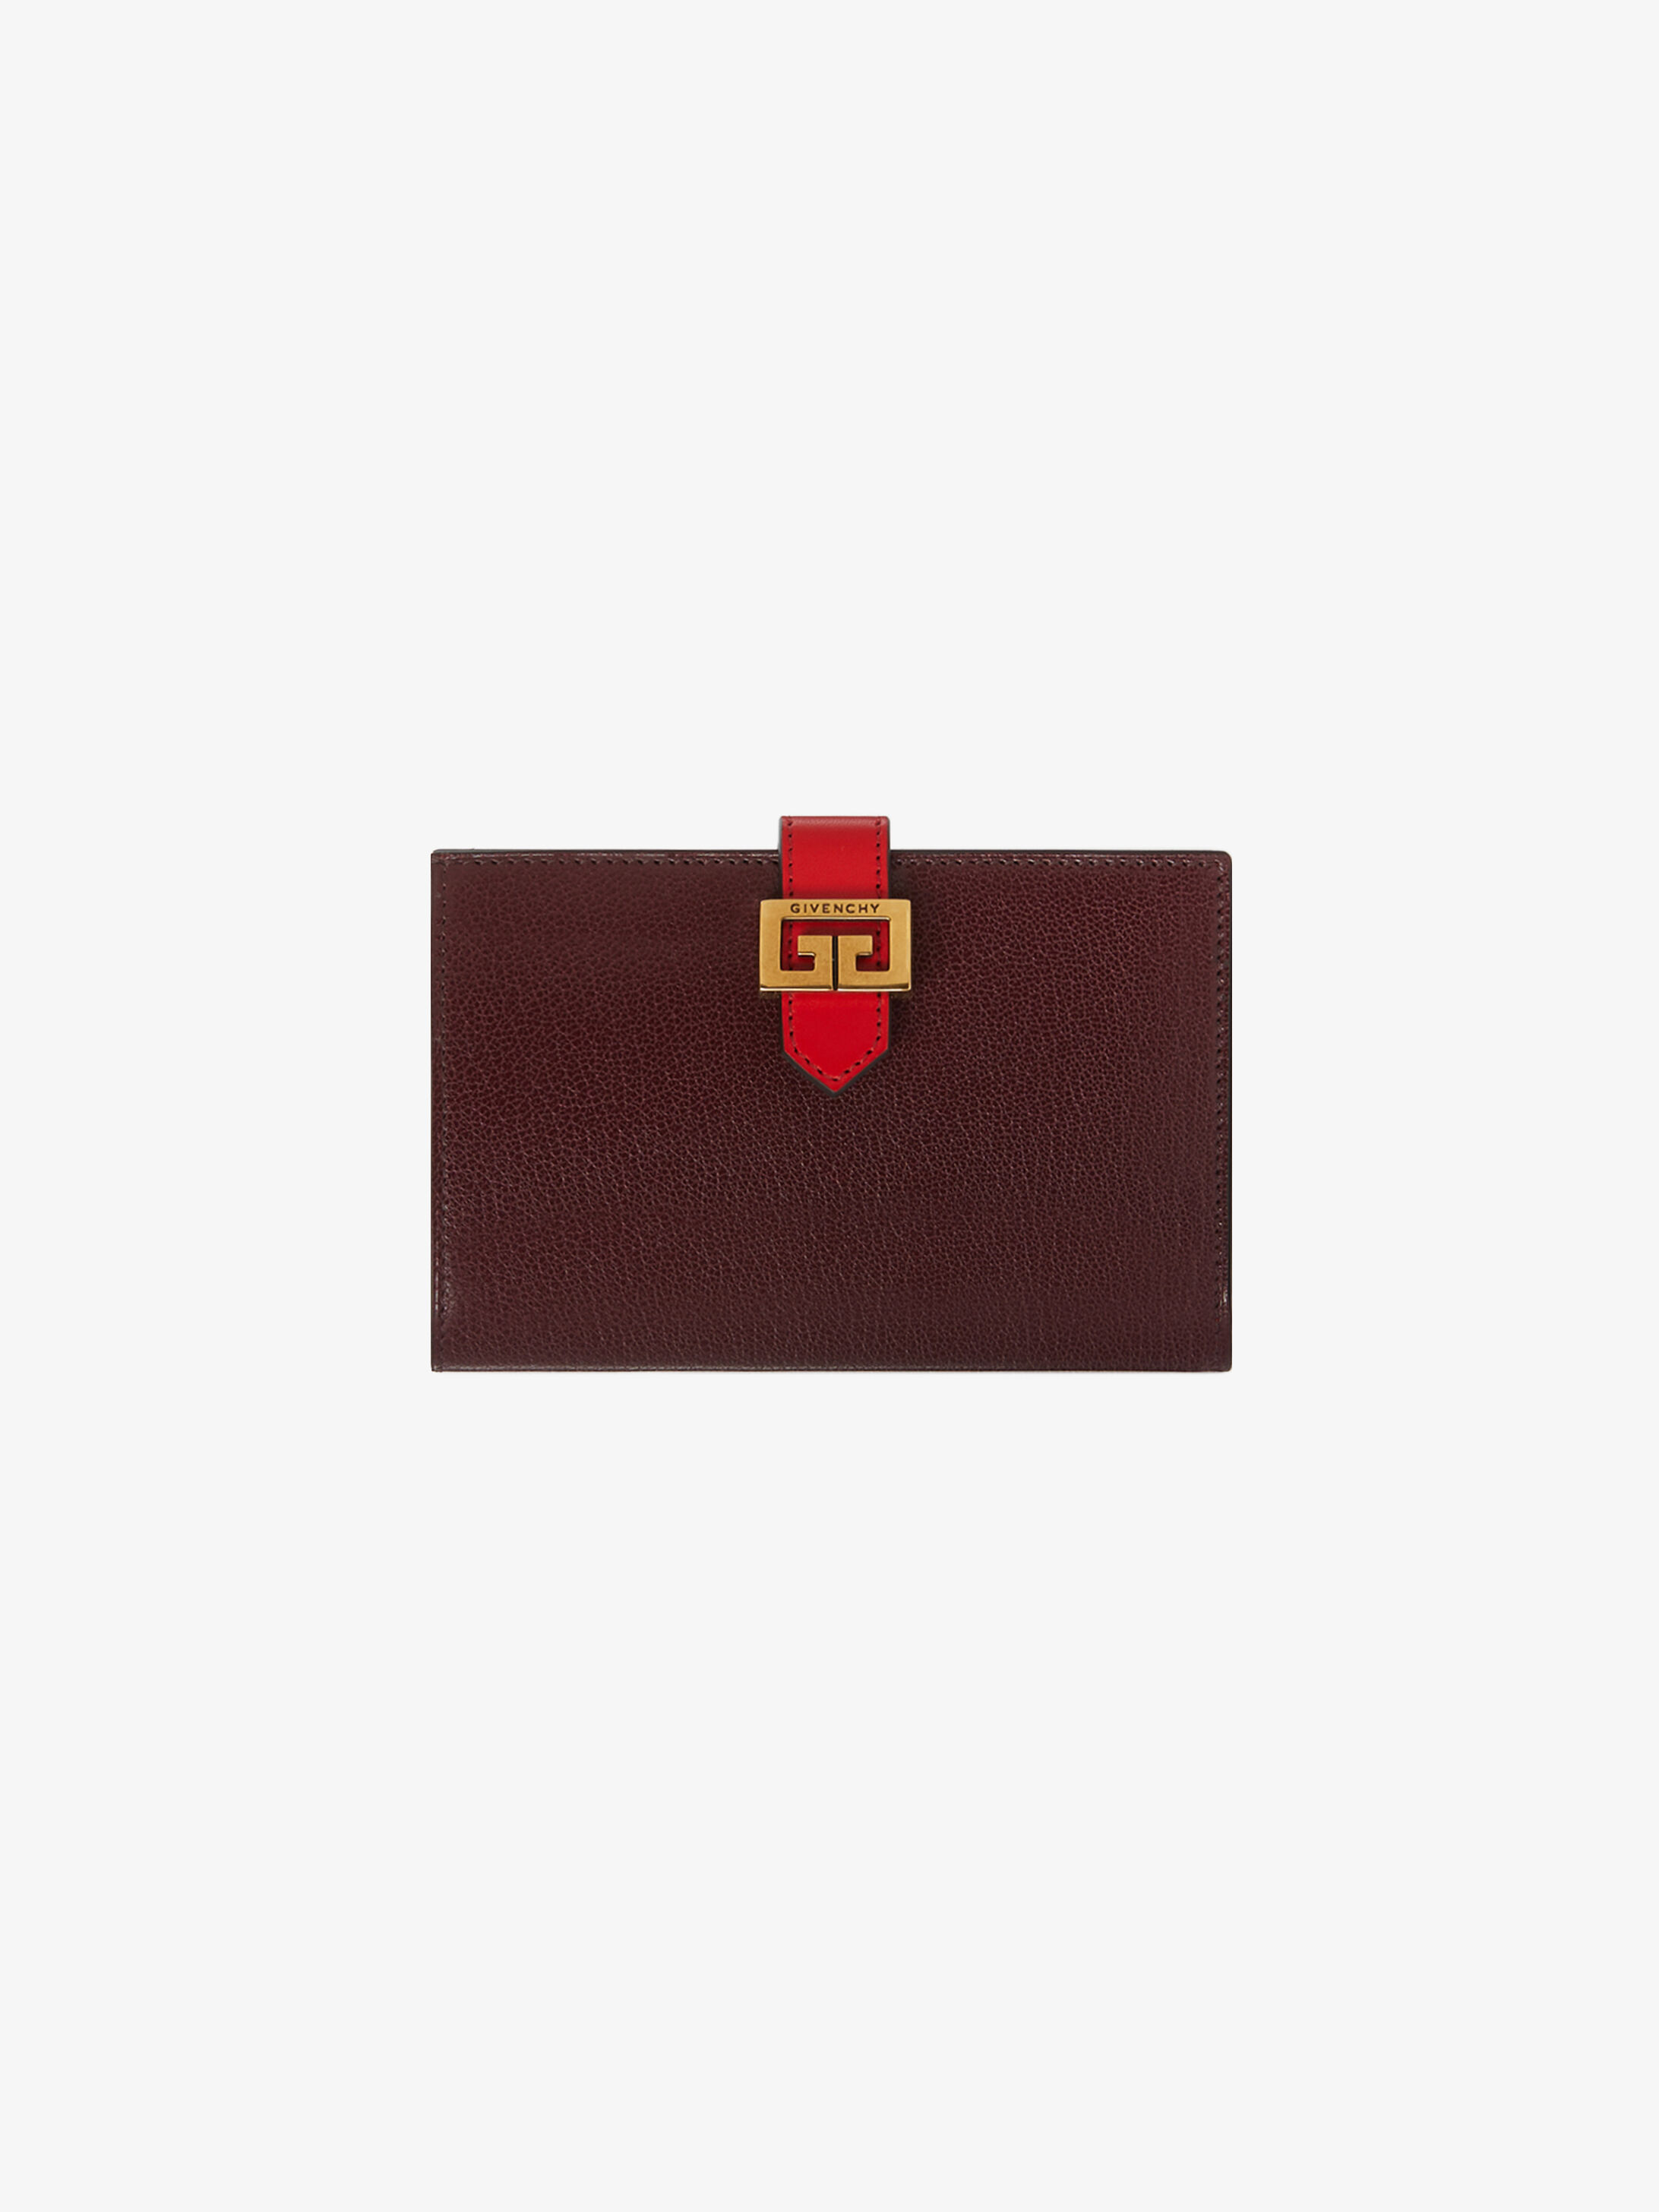 80ceb9f56ed Women's Wallets collection by Givenchy. | GIVENCHY Paris